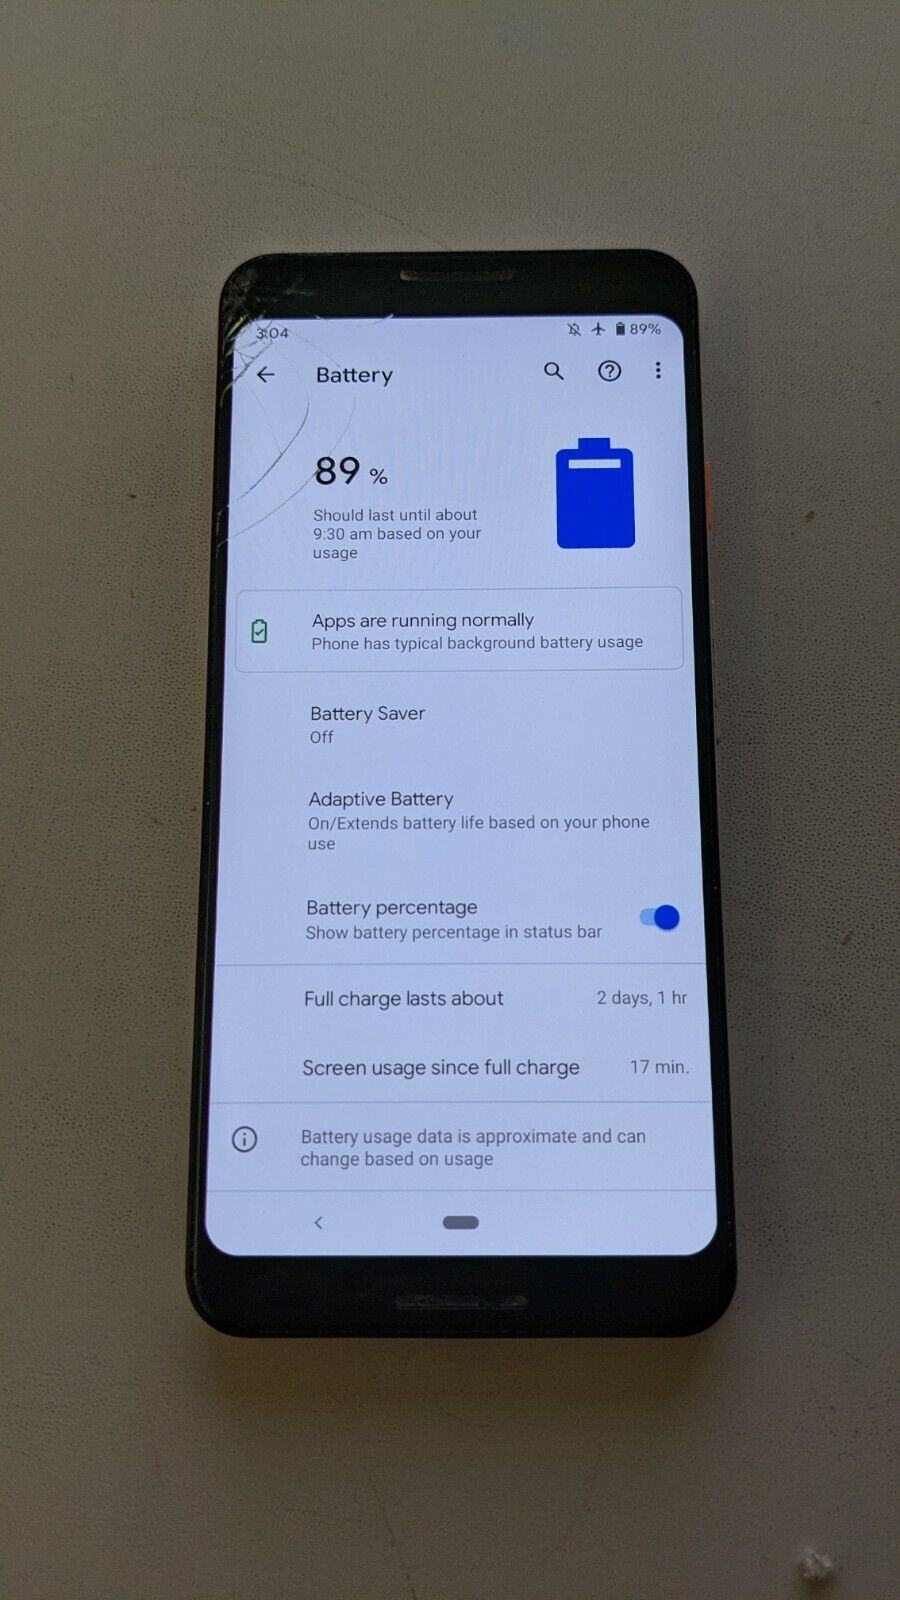 Android Phone - Google Pixel 3 64GB 4G/LTE Android Mobile Phone | CRACKED SCREEN + CRACKED BACK